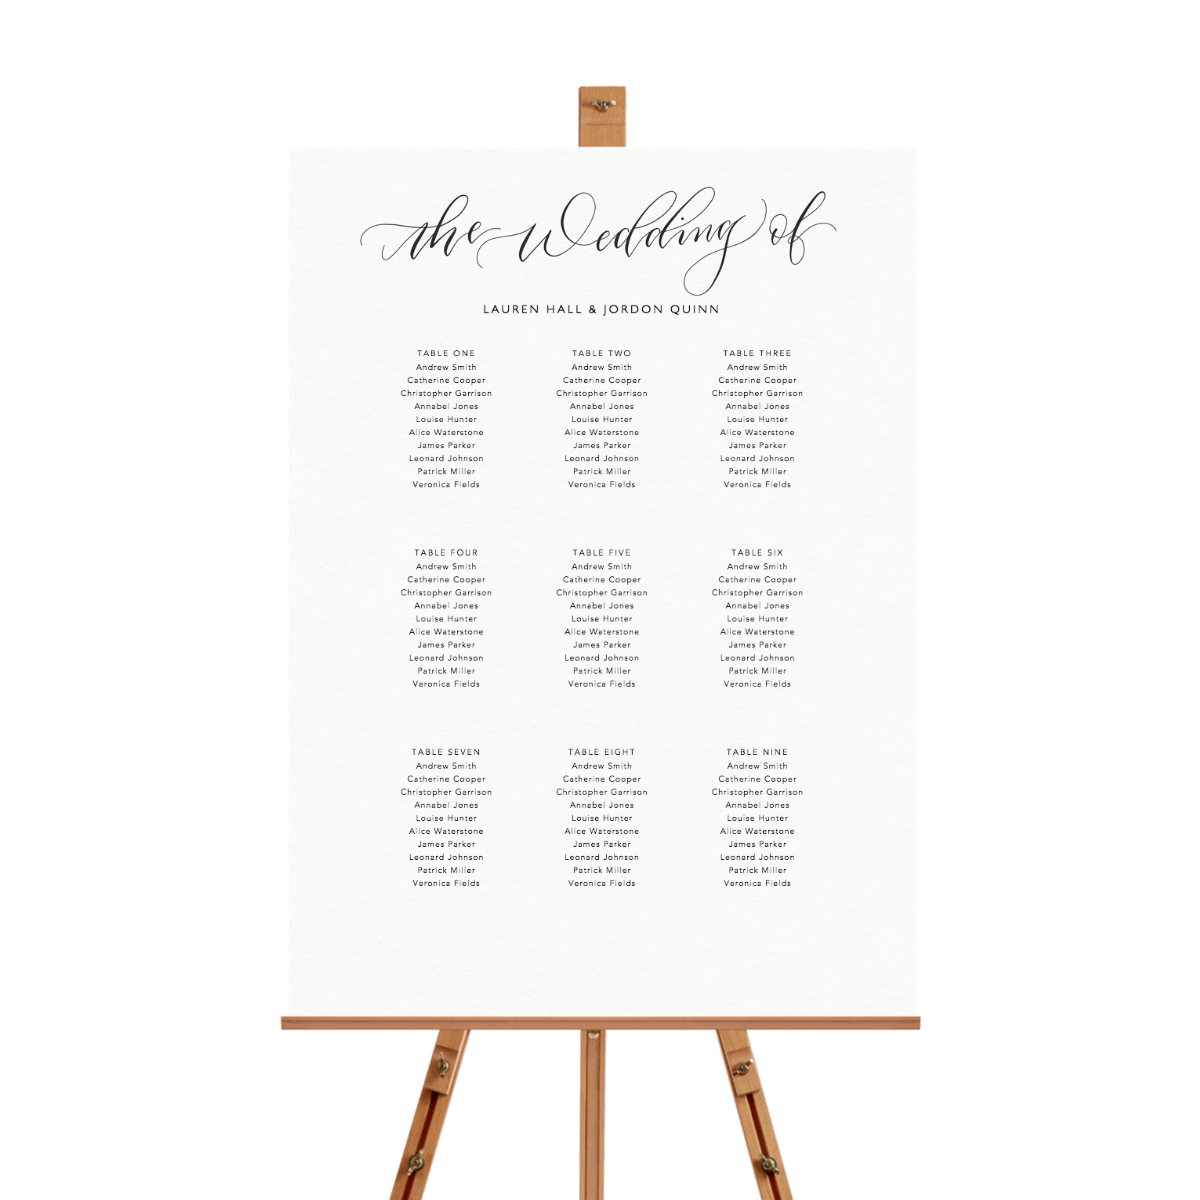 Https%3a%2f%2fwww.papier.com%2fproduct image%2f42195%2f1%2fthe wedding of calligraphy 10774 vorderseite 1532515025.png?ixlib=rb 1.1